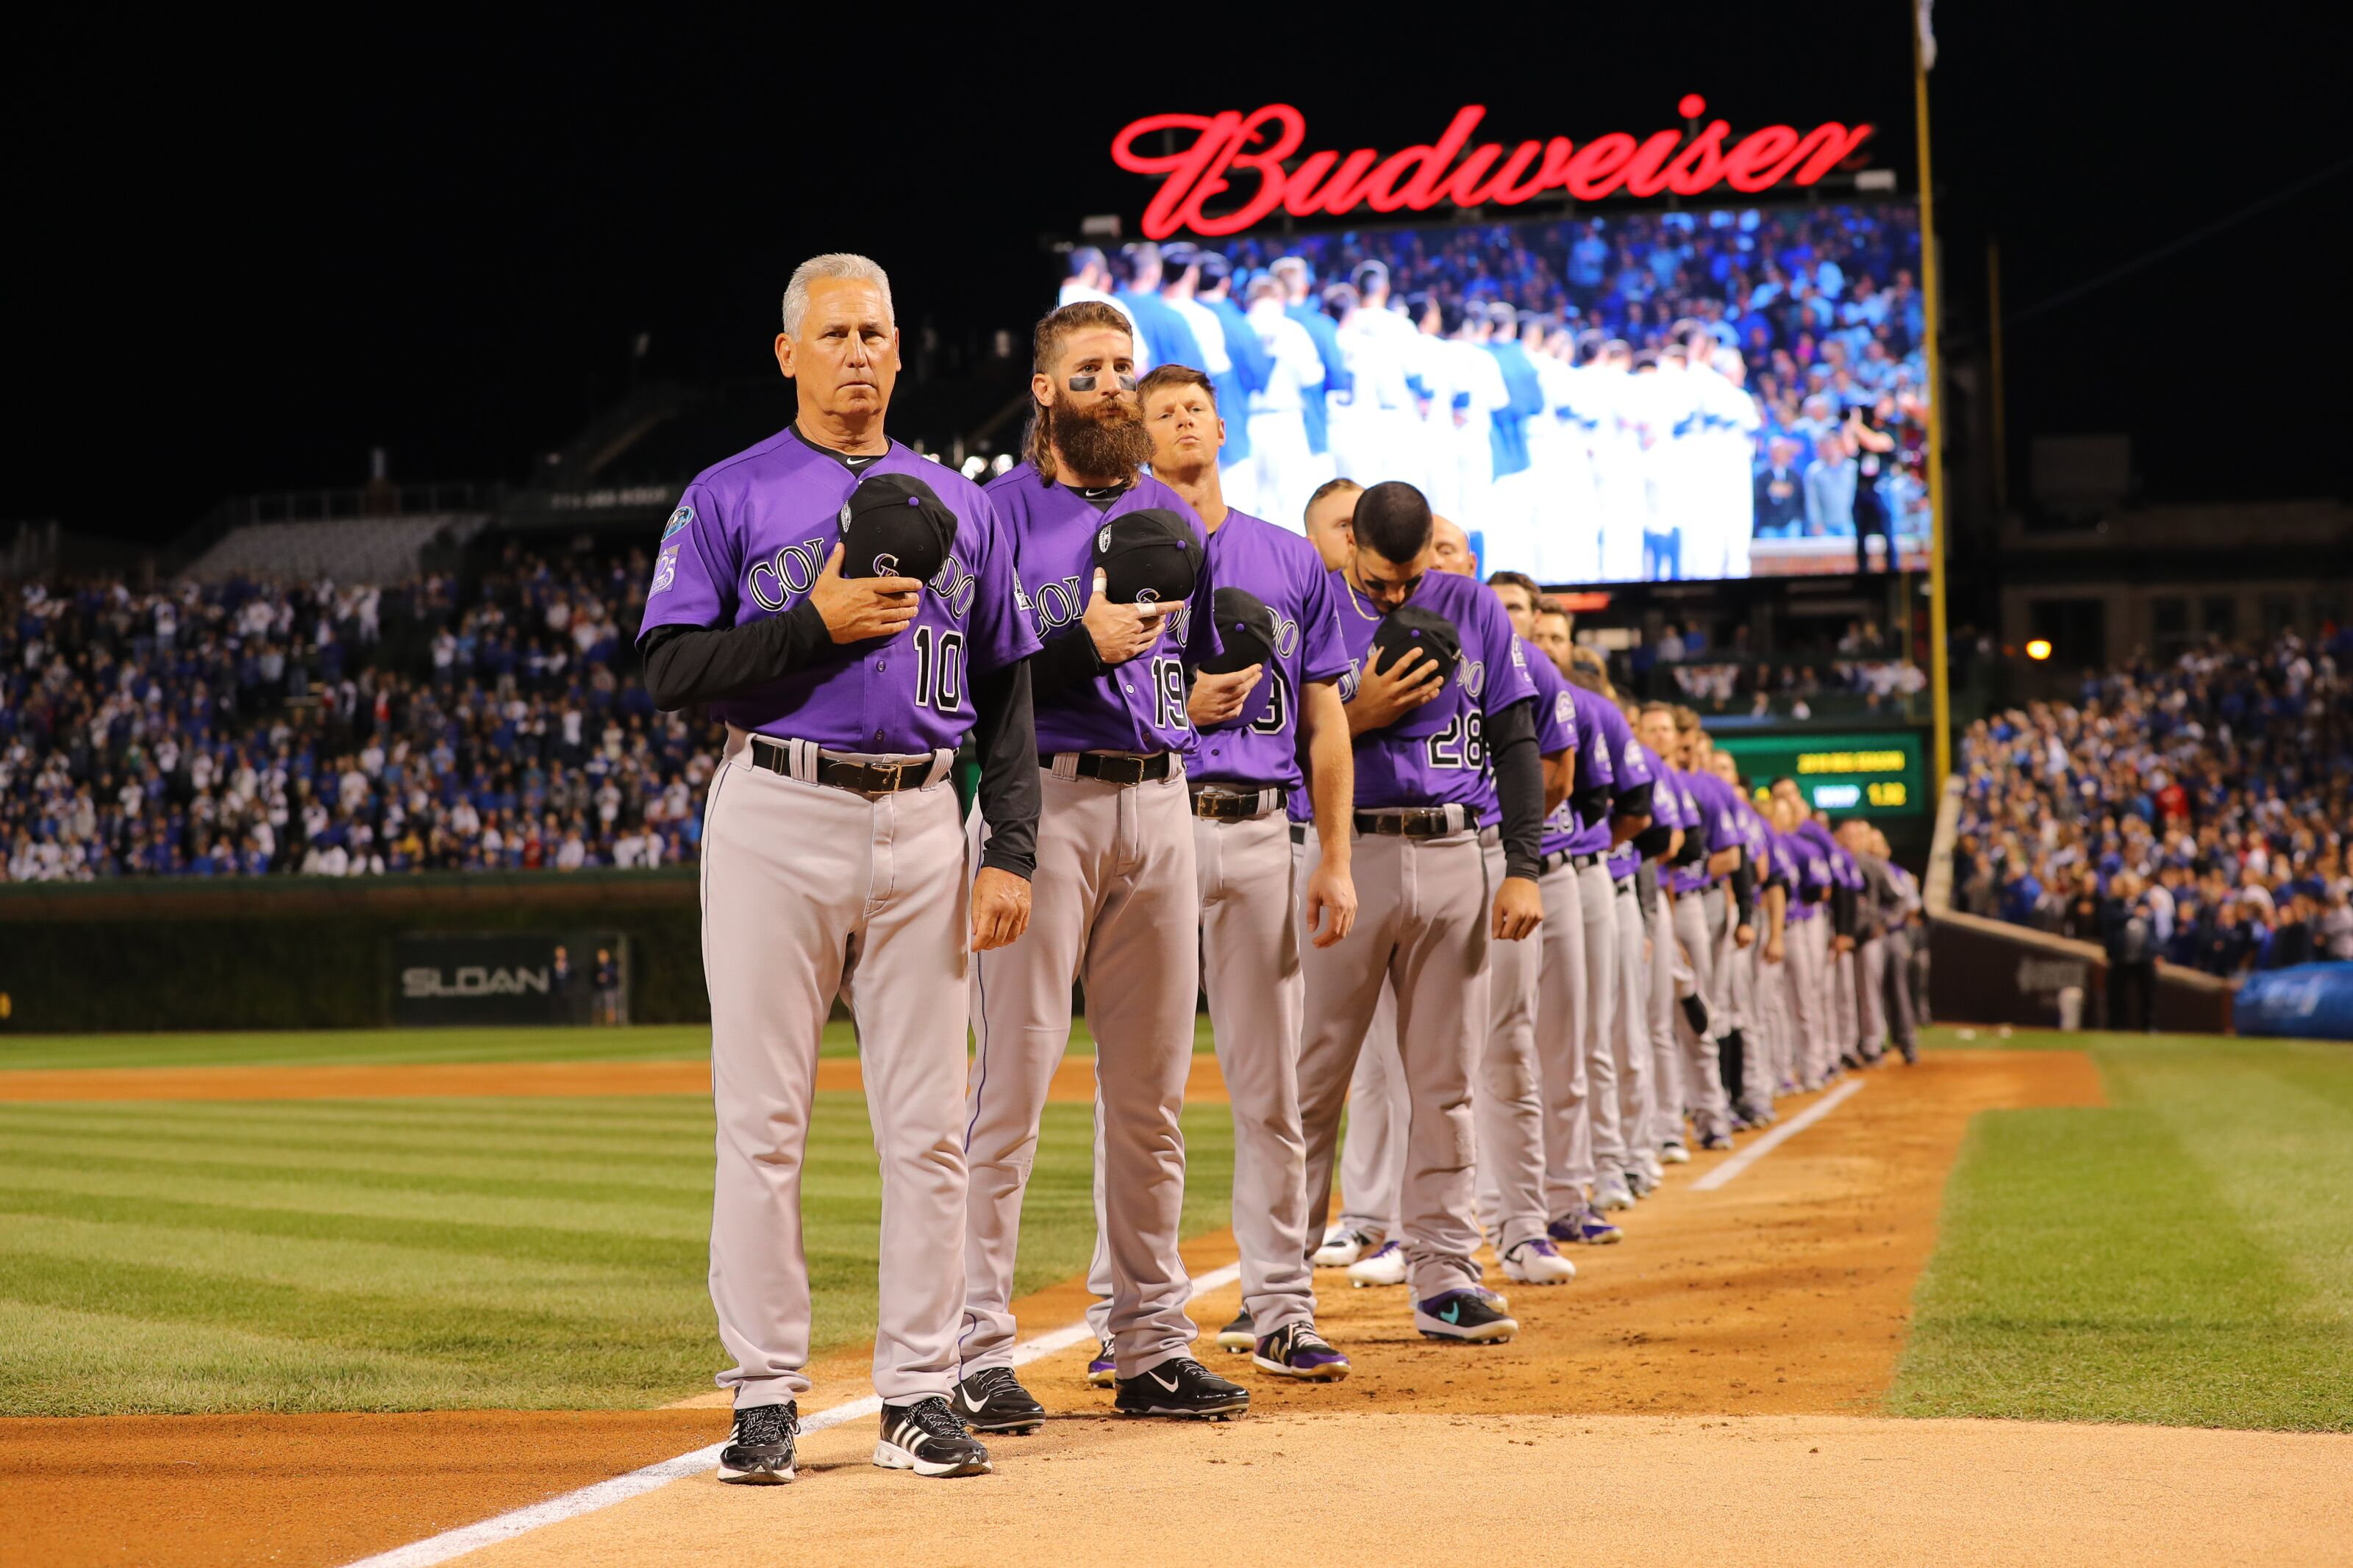 Colorado Rockies: 3 Franchise Highlights for 2018